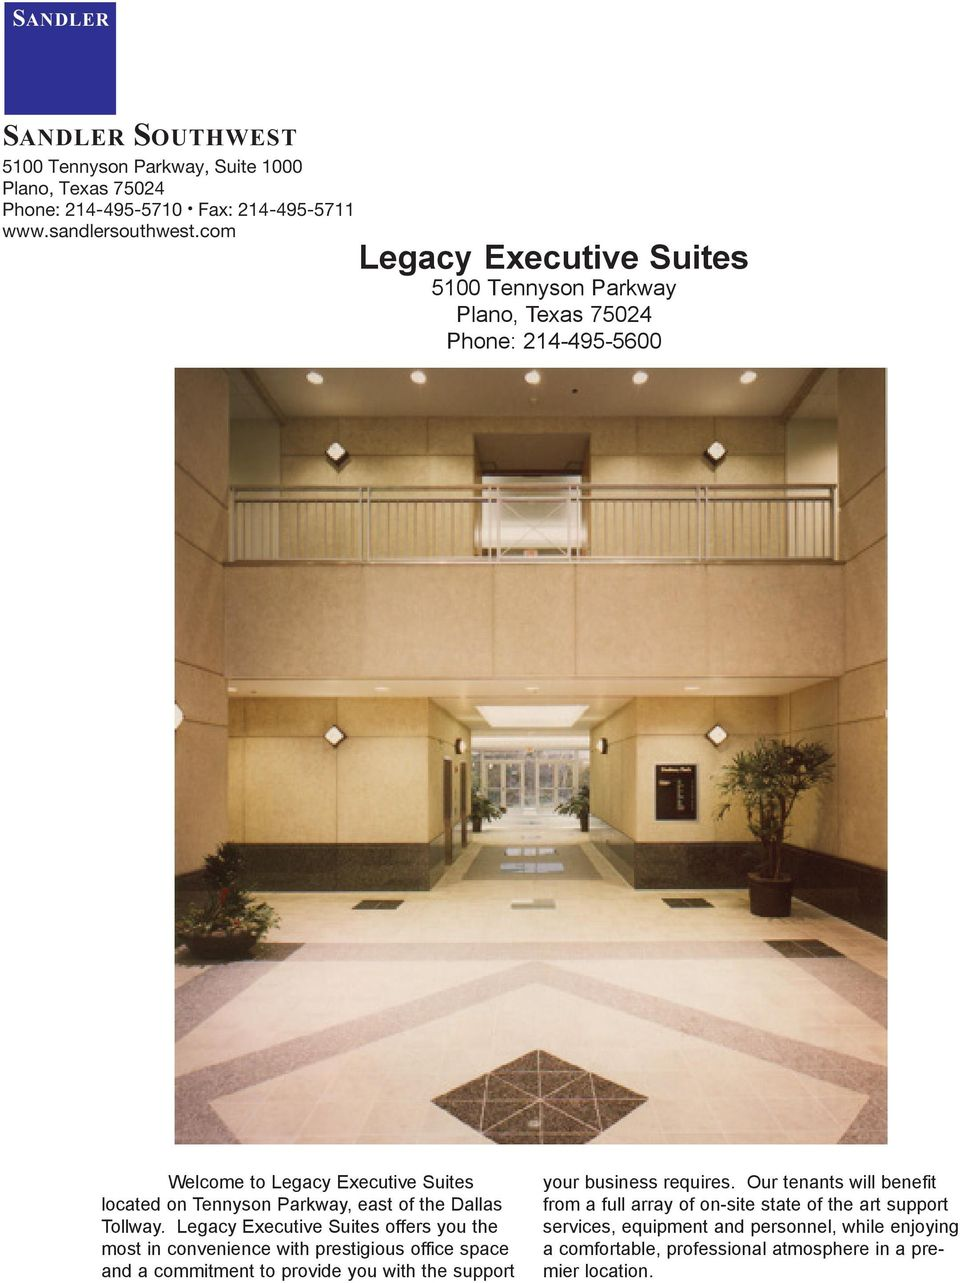 Legacy Executive Suites offers you the most in convenience with prestigious office space and a commitment to provide you with the support your business requires.